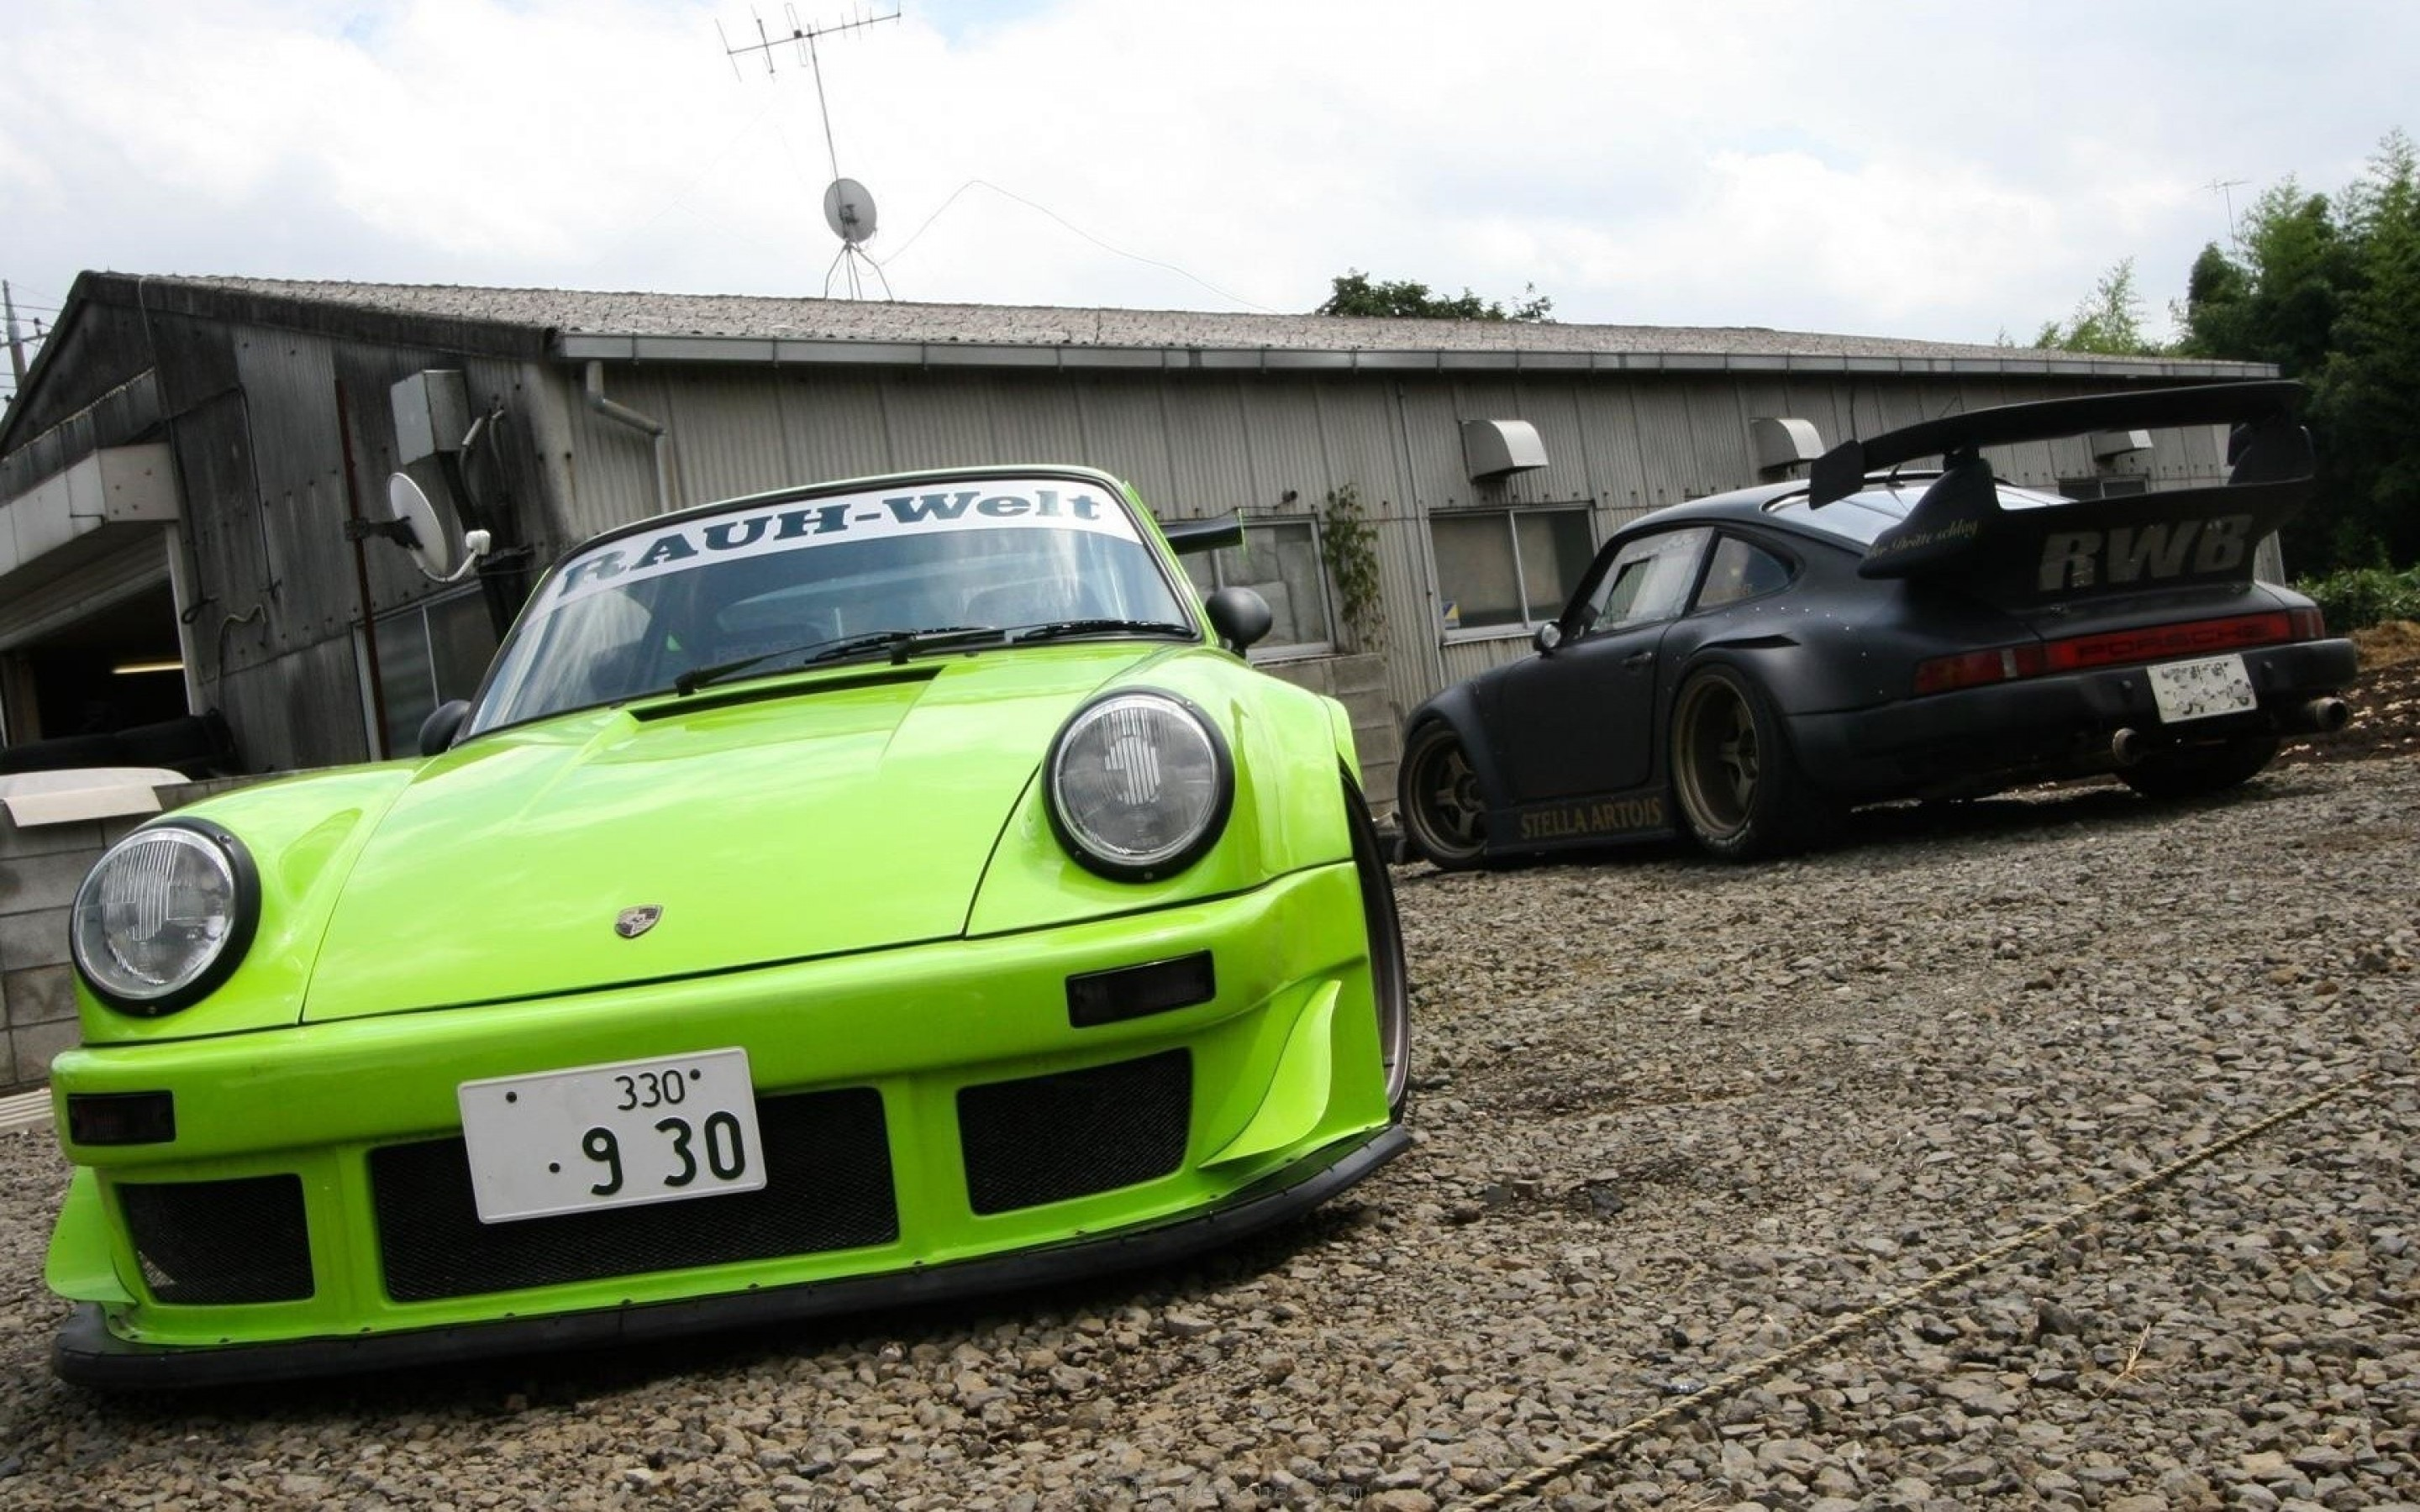 Targa Rwb Walpaper: Porsche 911 Full HD Wallpaper And Background Image